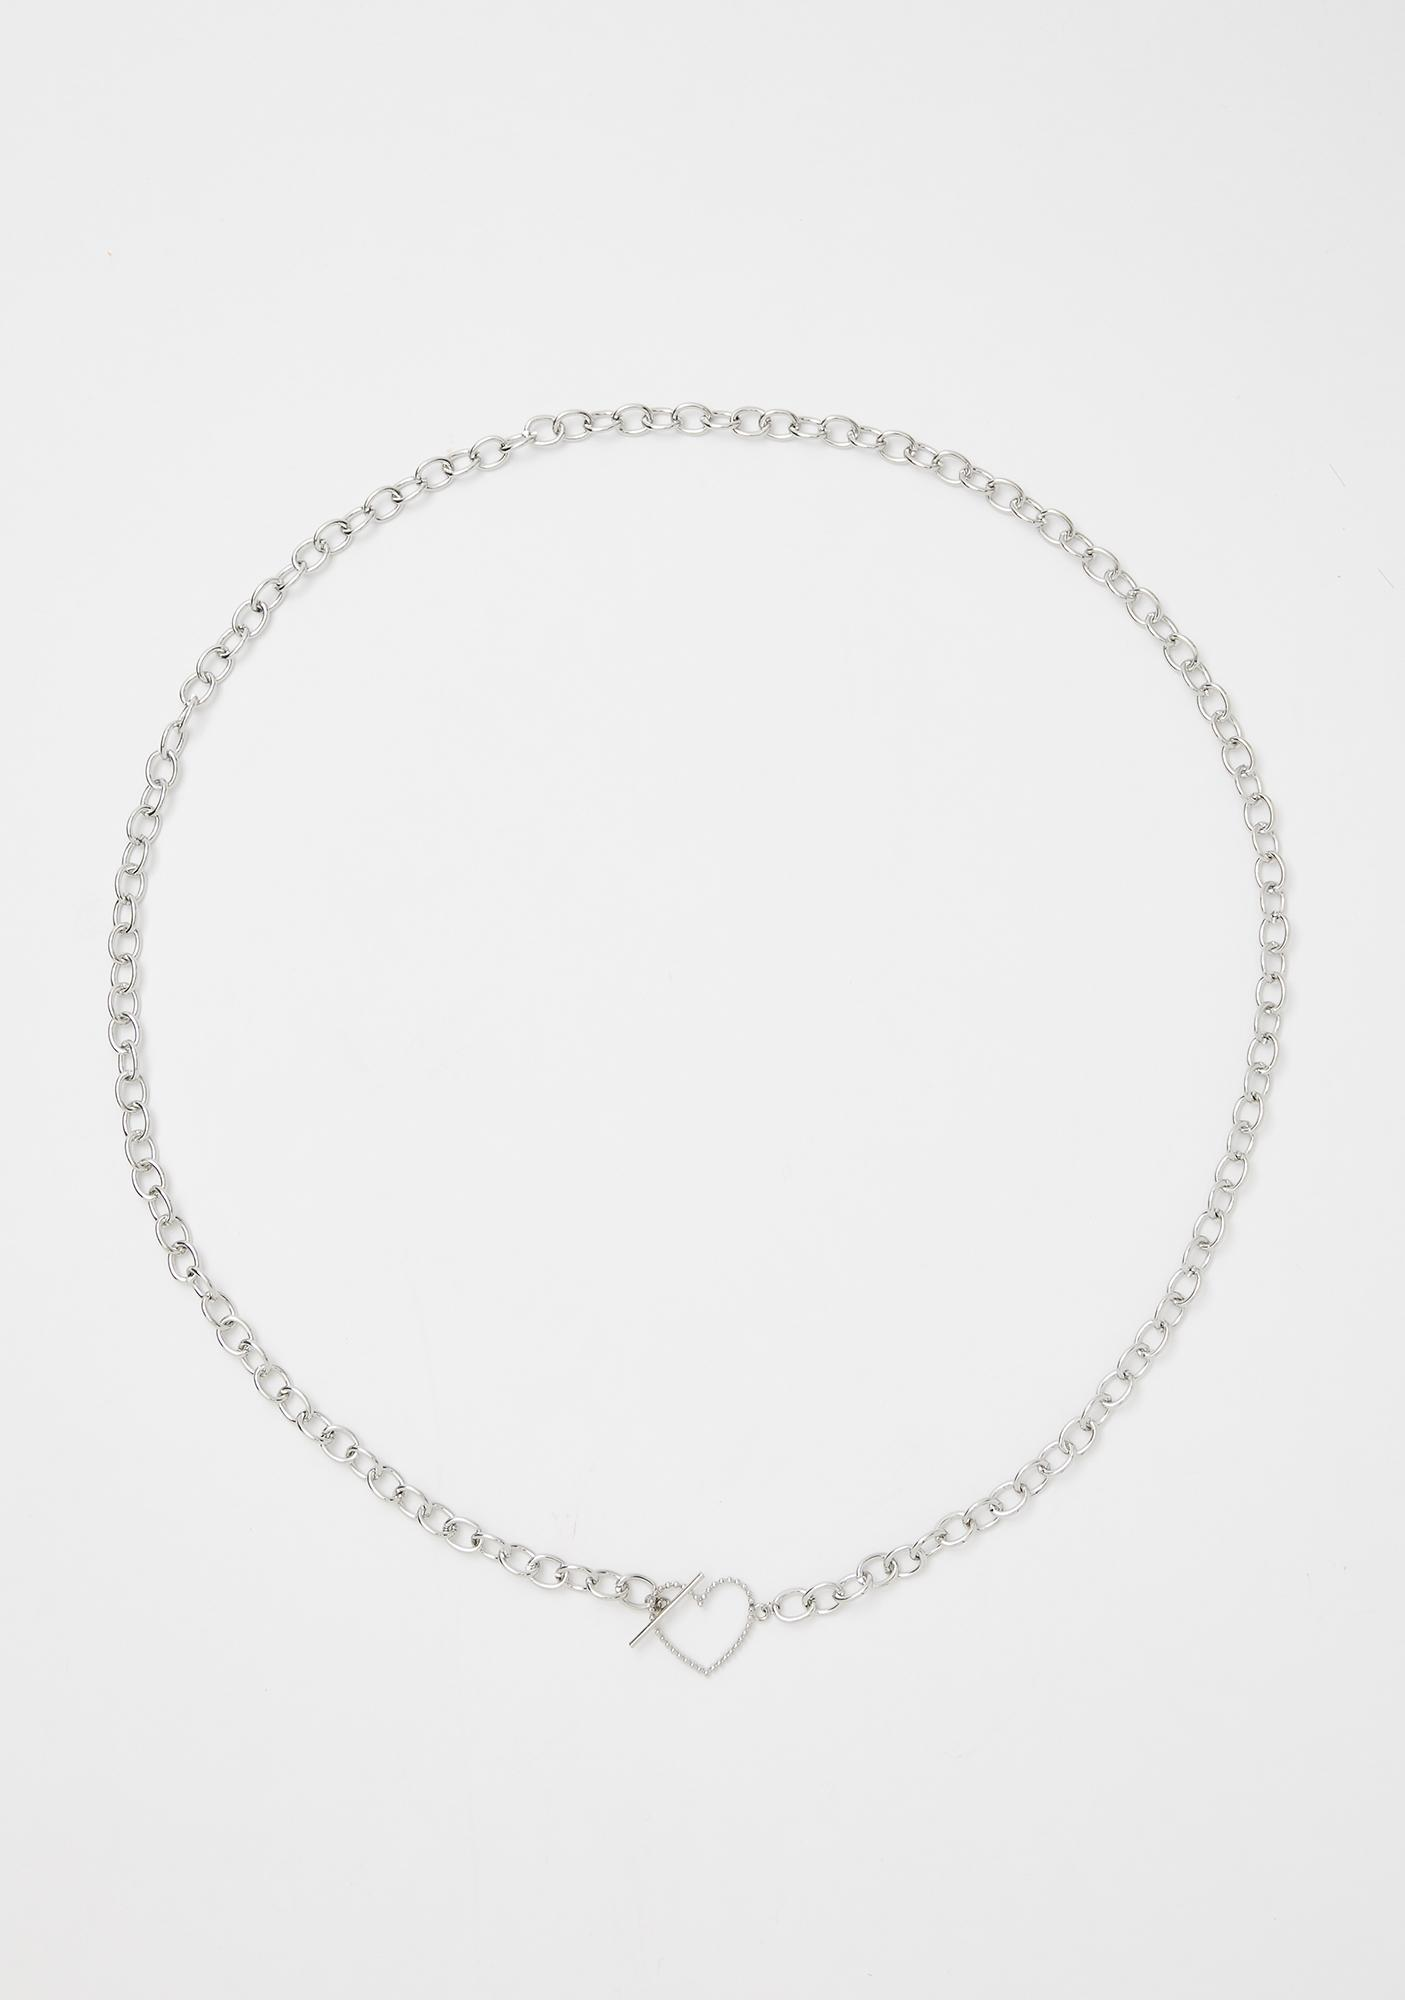 Barred From Love Chain Necklace